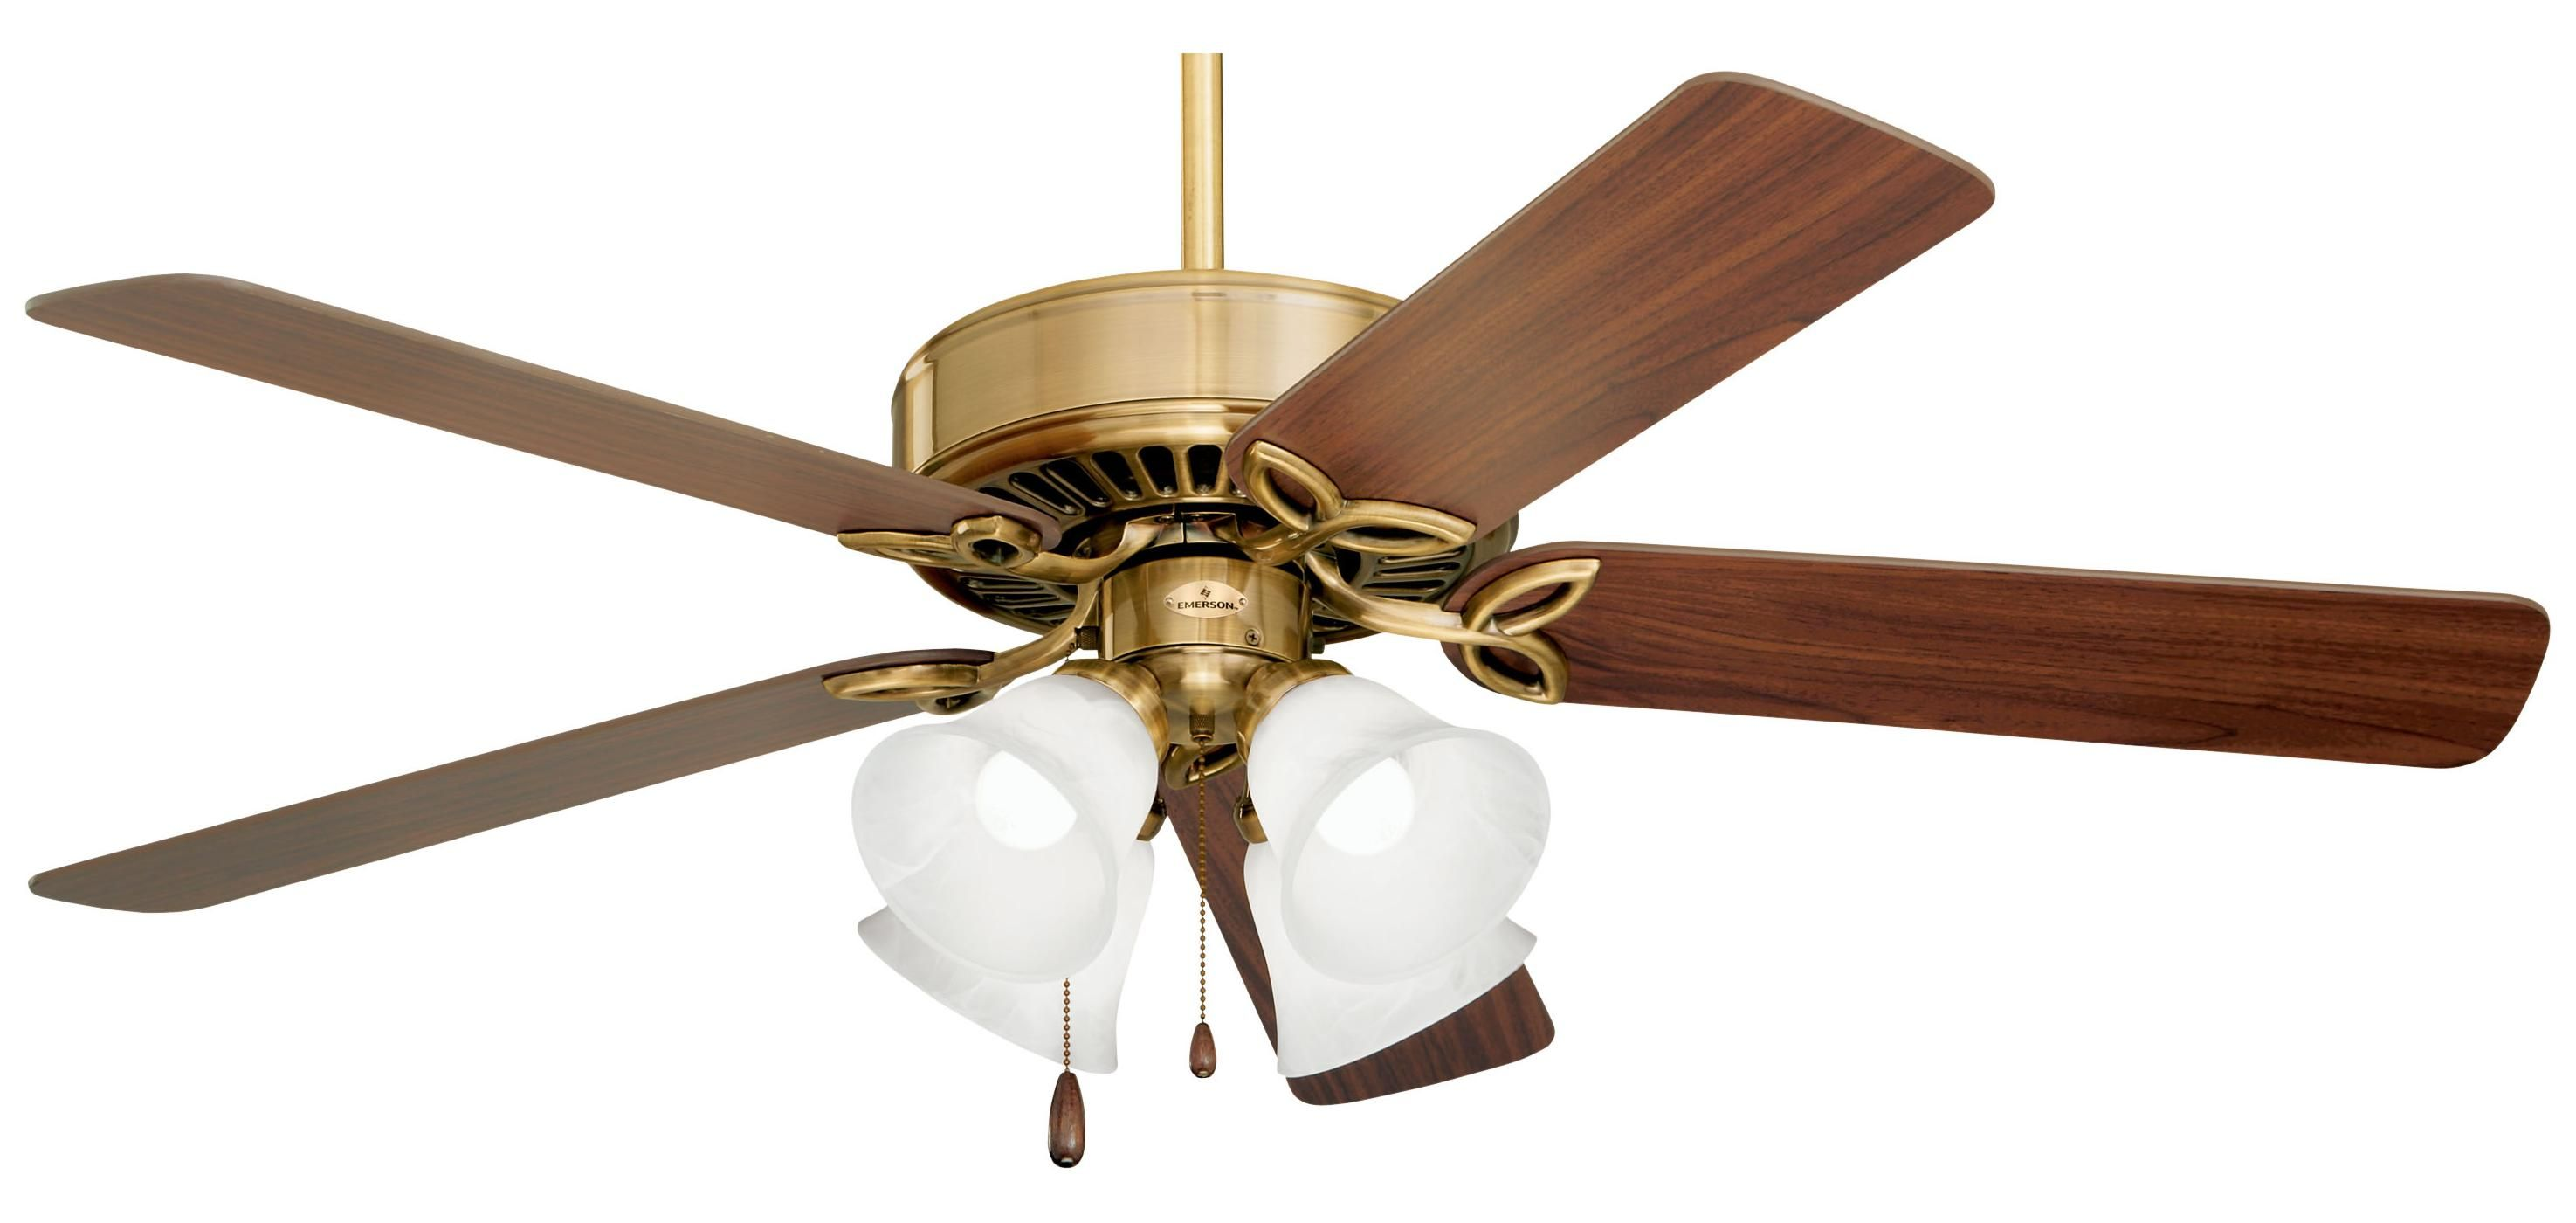 Emerson 50 pro series ii cf711ab airflow rating 5403 cfm cubic emerson 50 pro series ii ceiling fan model cf711ab in antique brass aloadofball Image collections